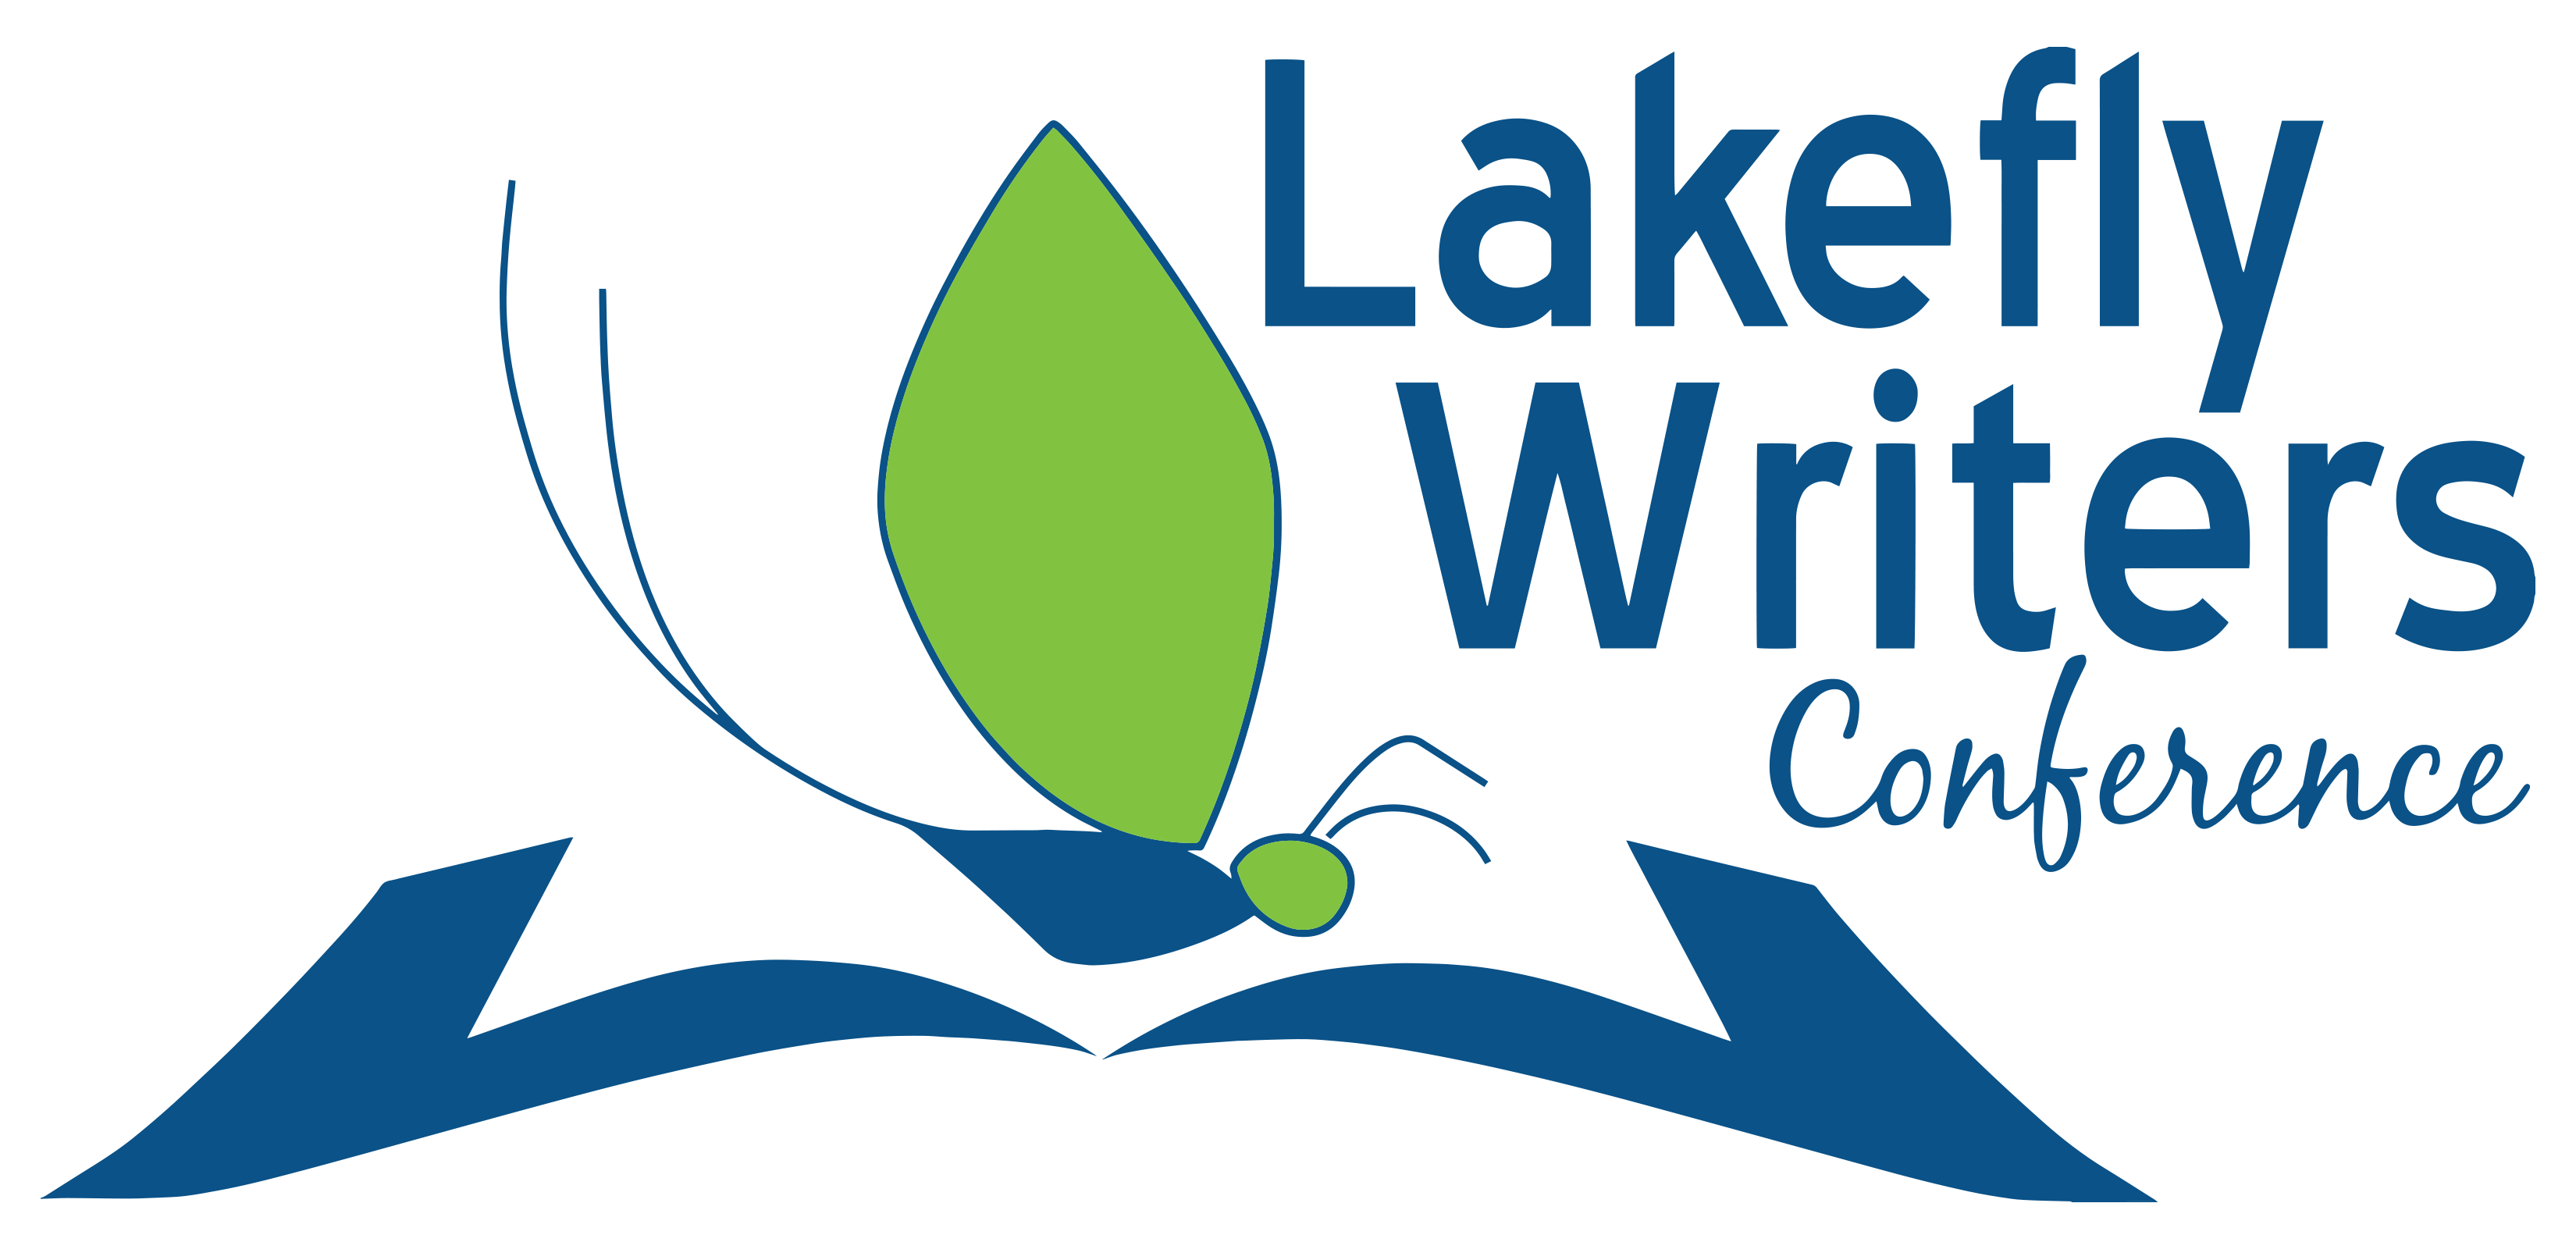 Lakefly literary conference we. Writer clipart business writing